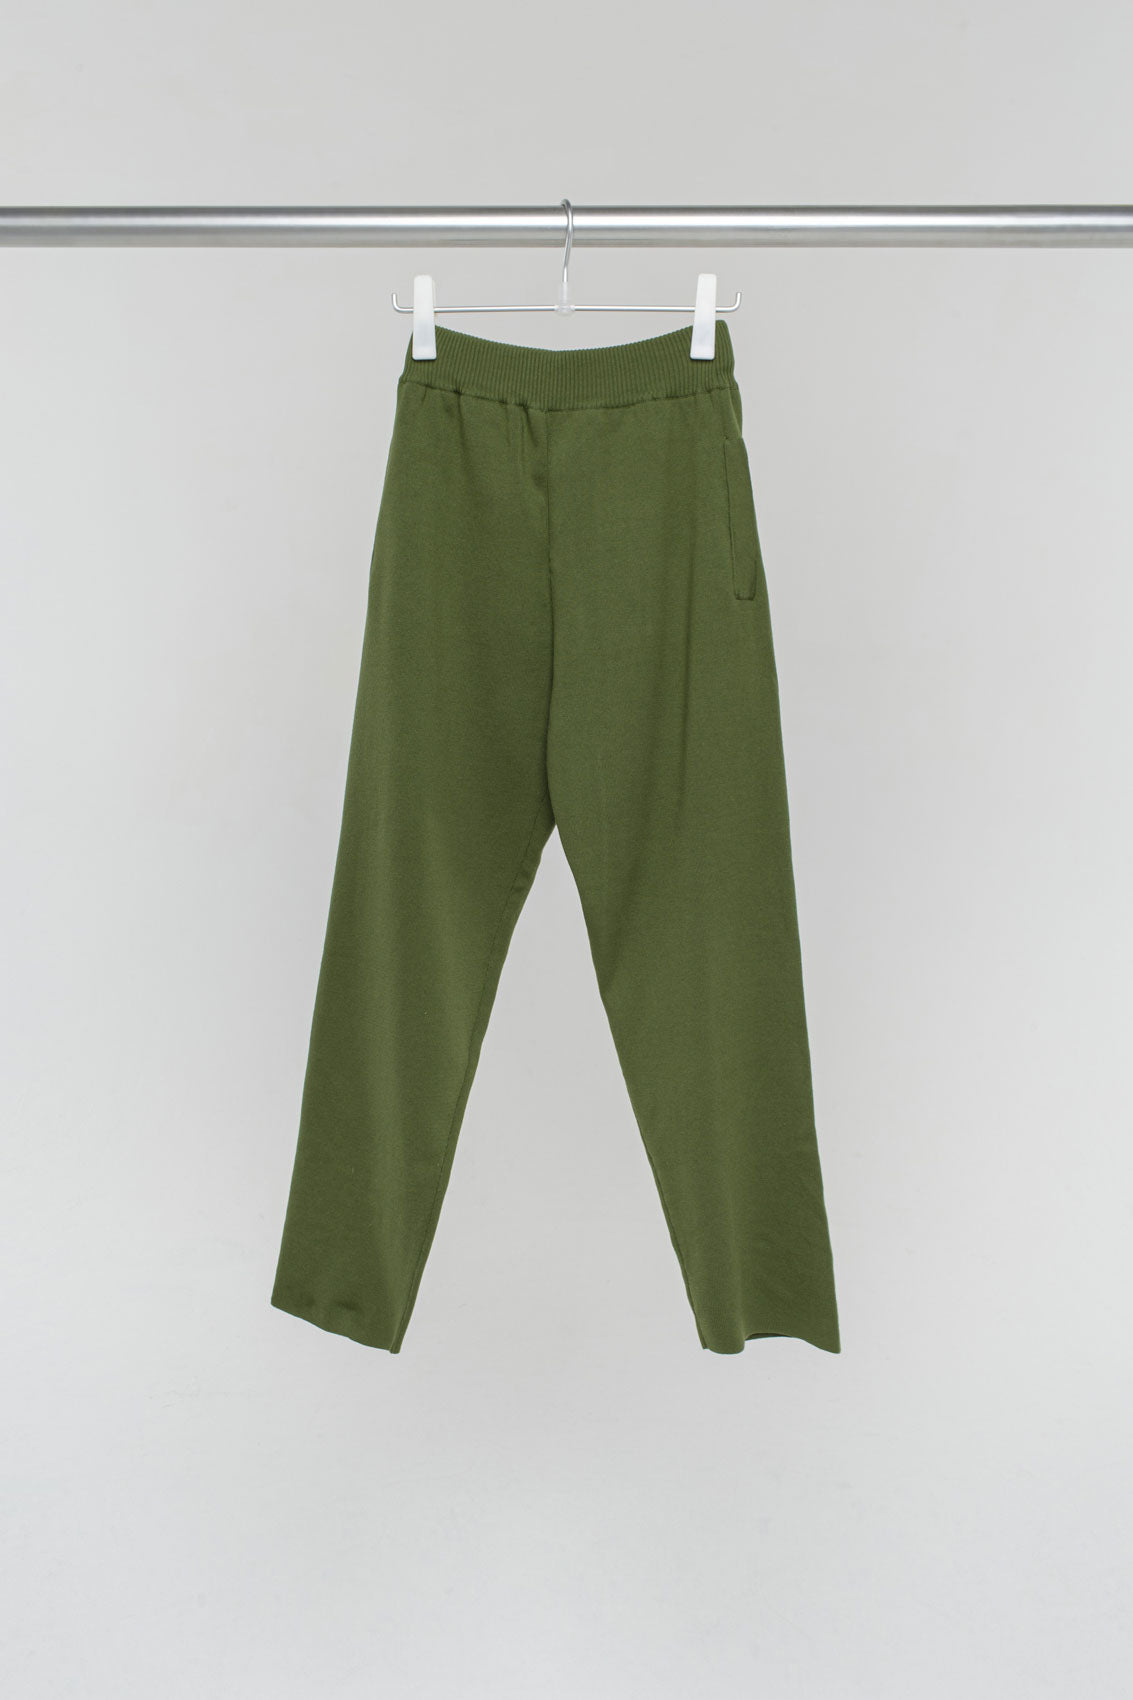 GREEN KNIT PANTS